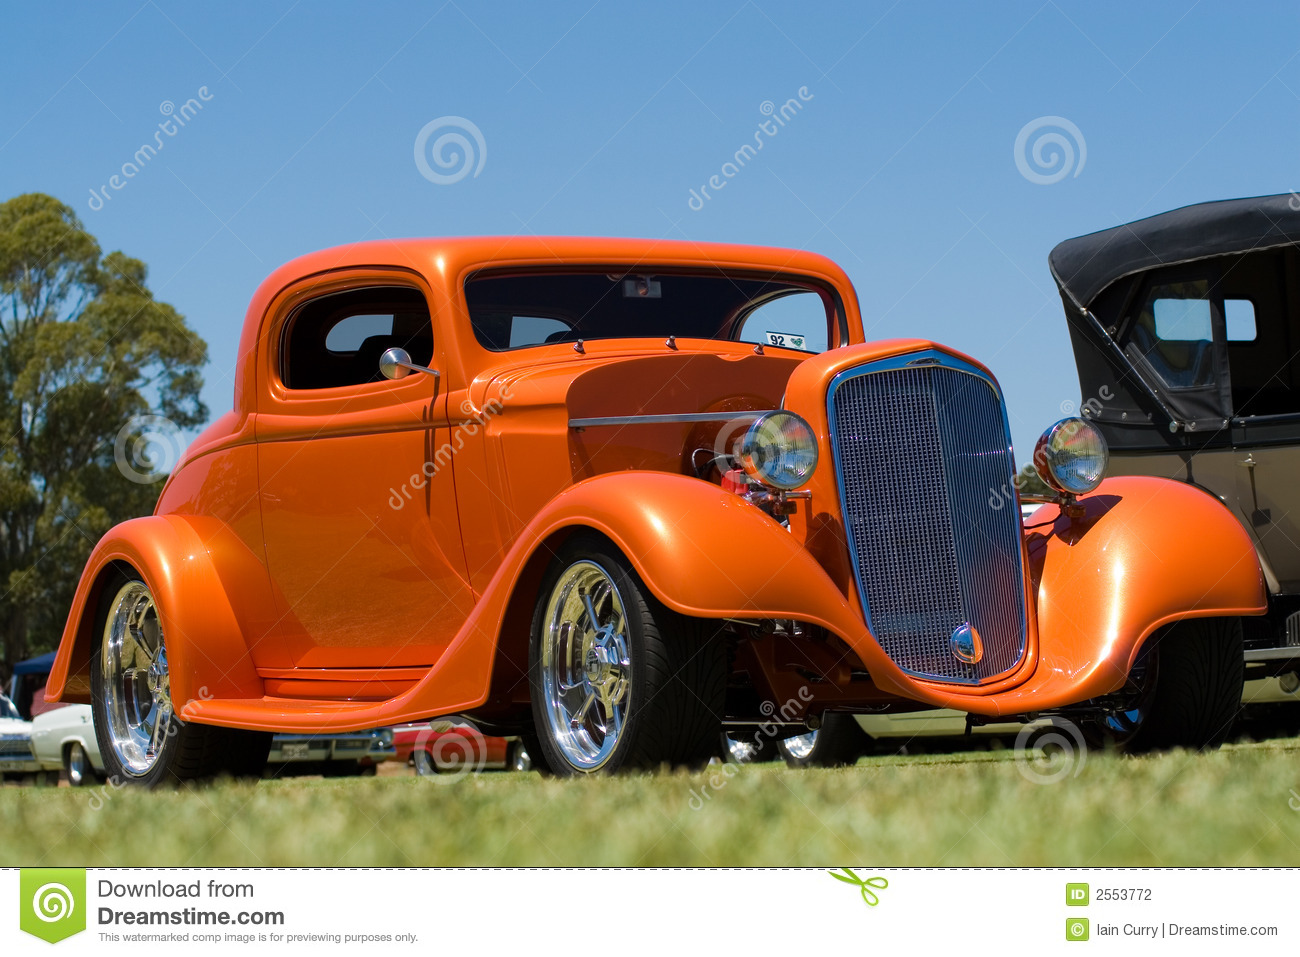 Audio Car Wallpaper Download Orange Hot Rod Car Stock Photography Image 2553772